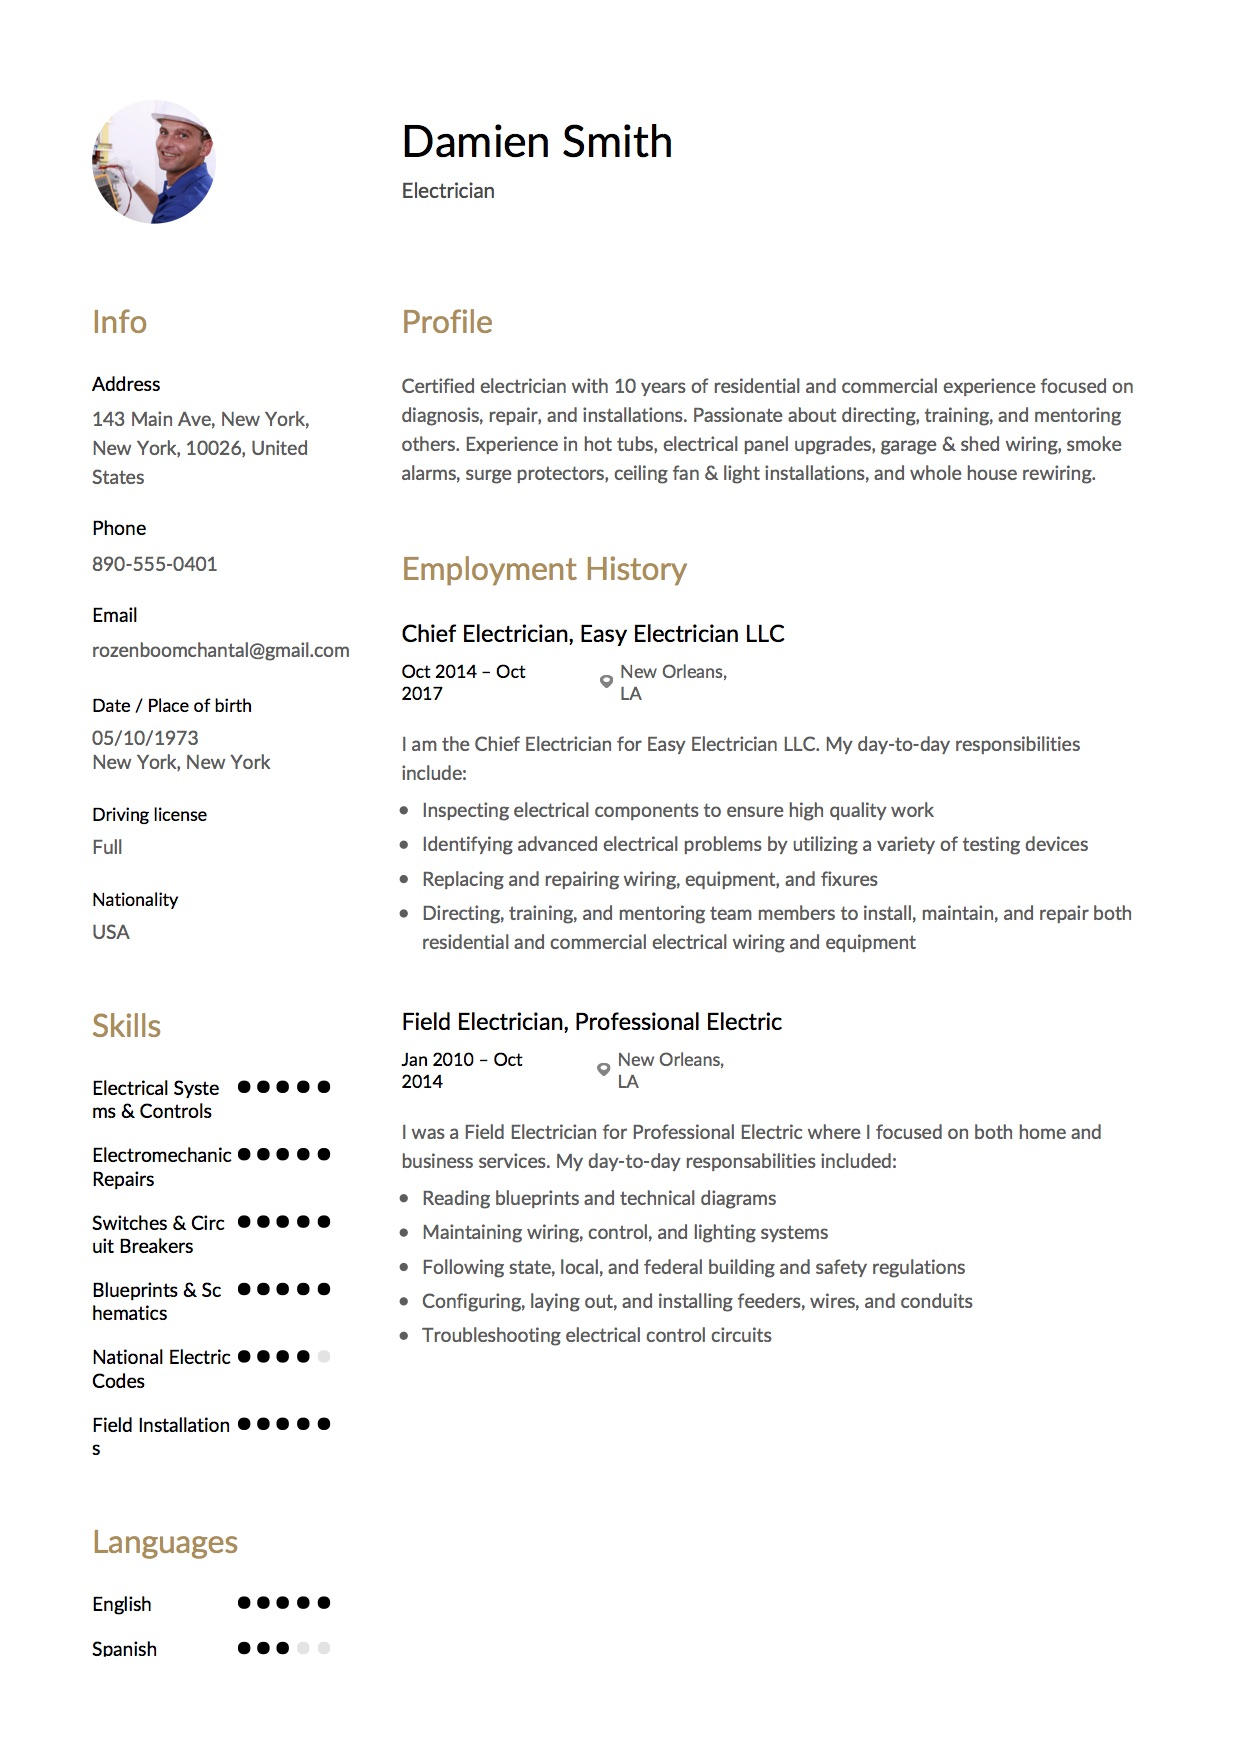 Damien Smith   Resume Electrician Example